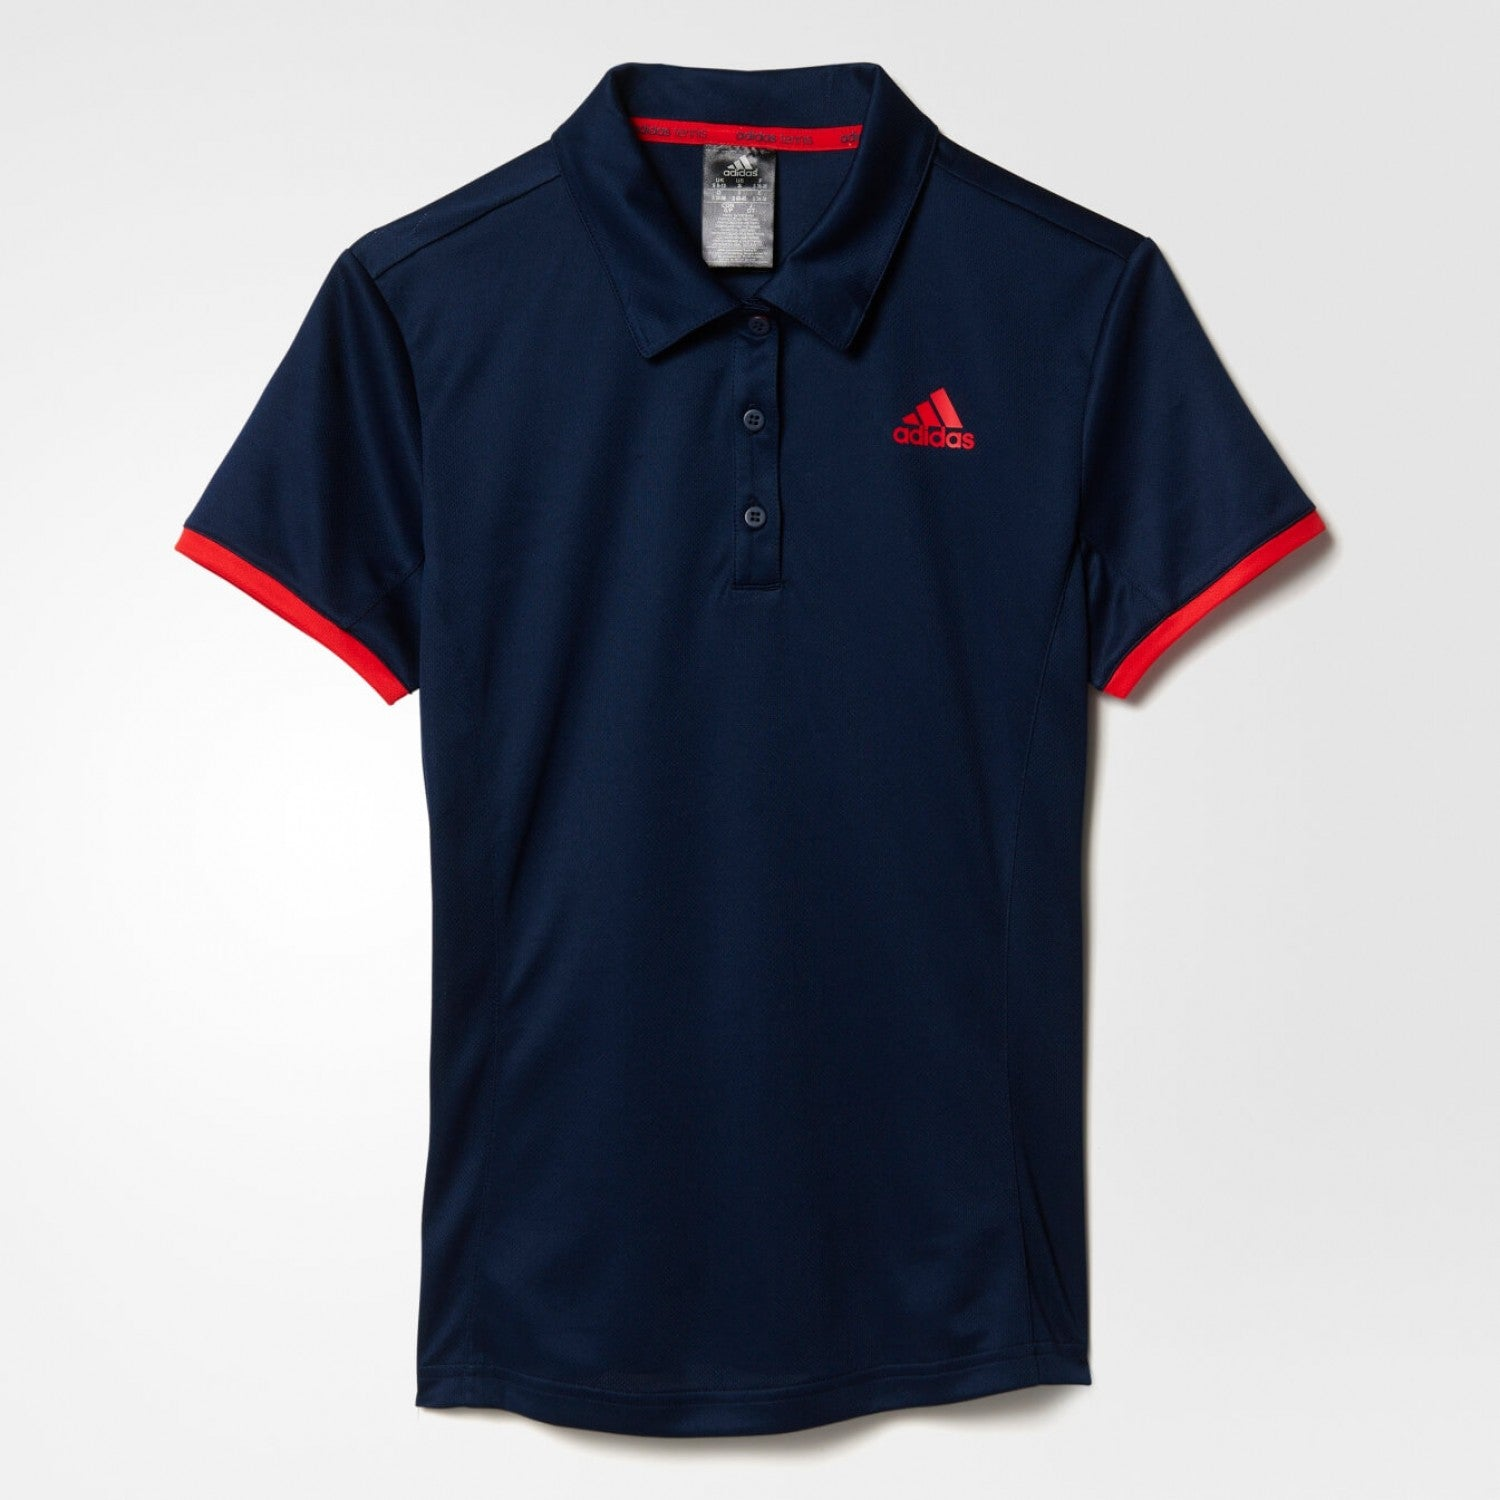 8d5897818 Adidas Women Tennis Court Polo Shirt Navy Red AX8176